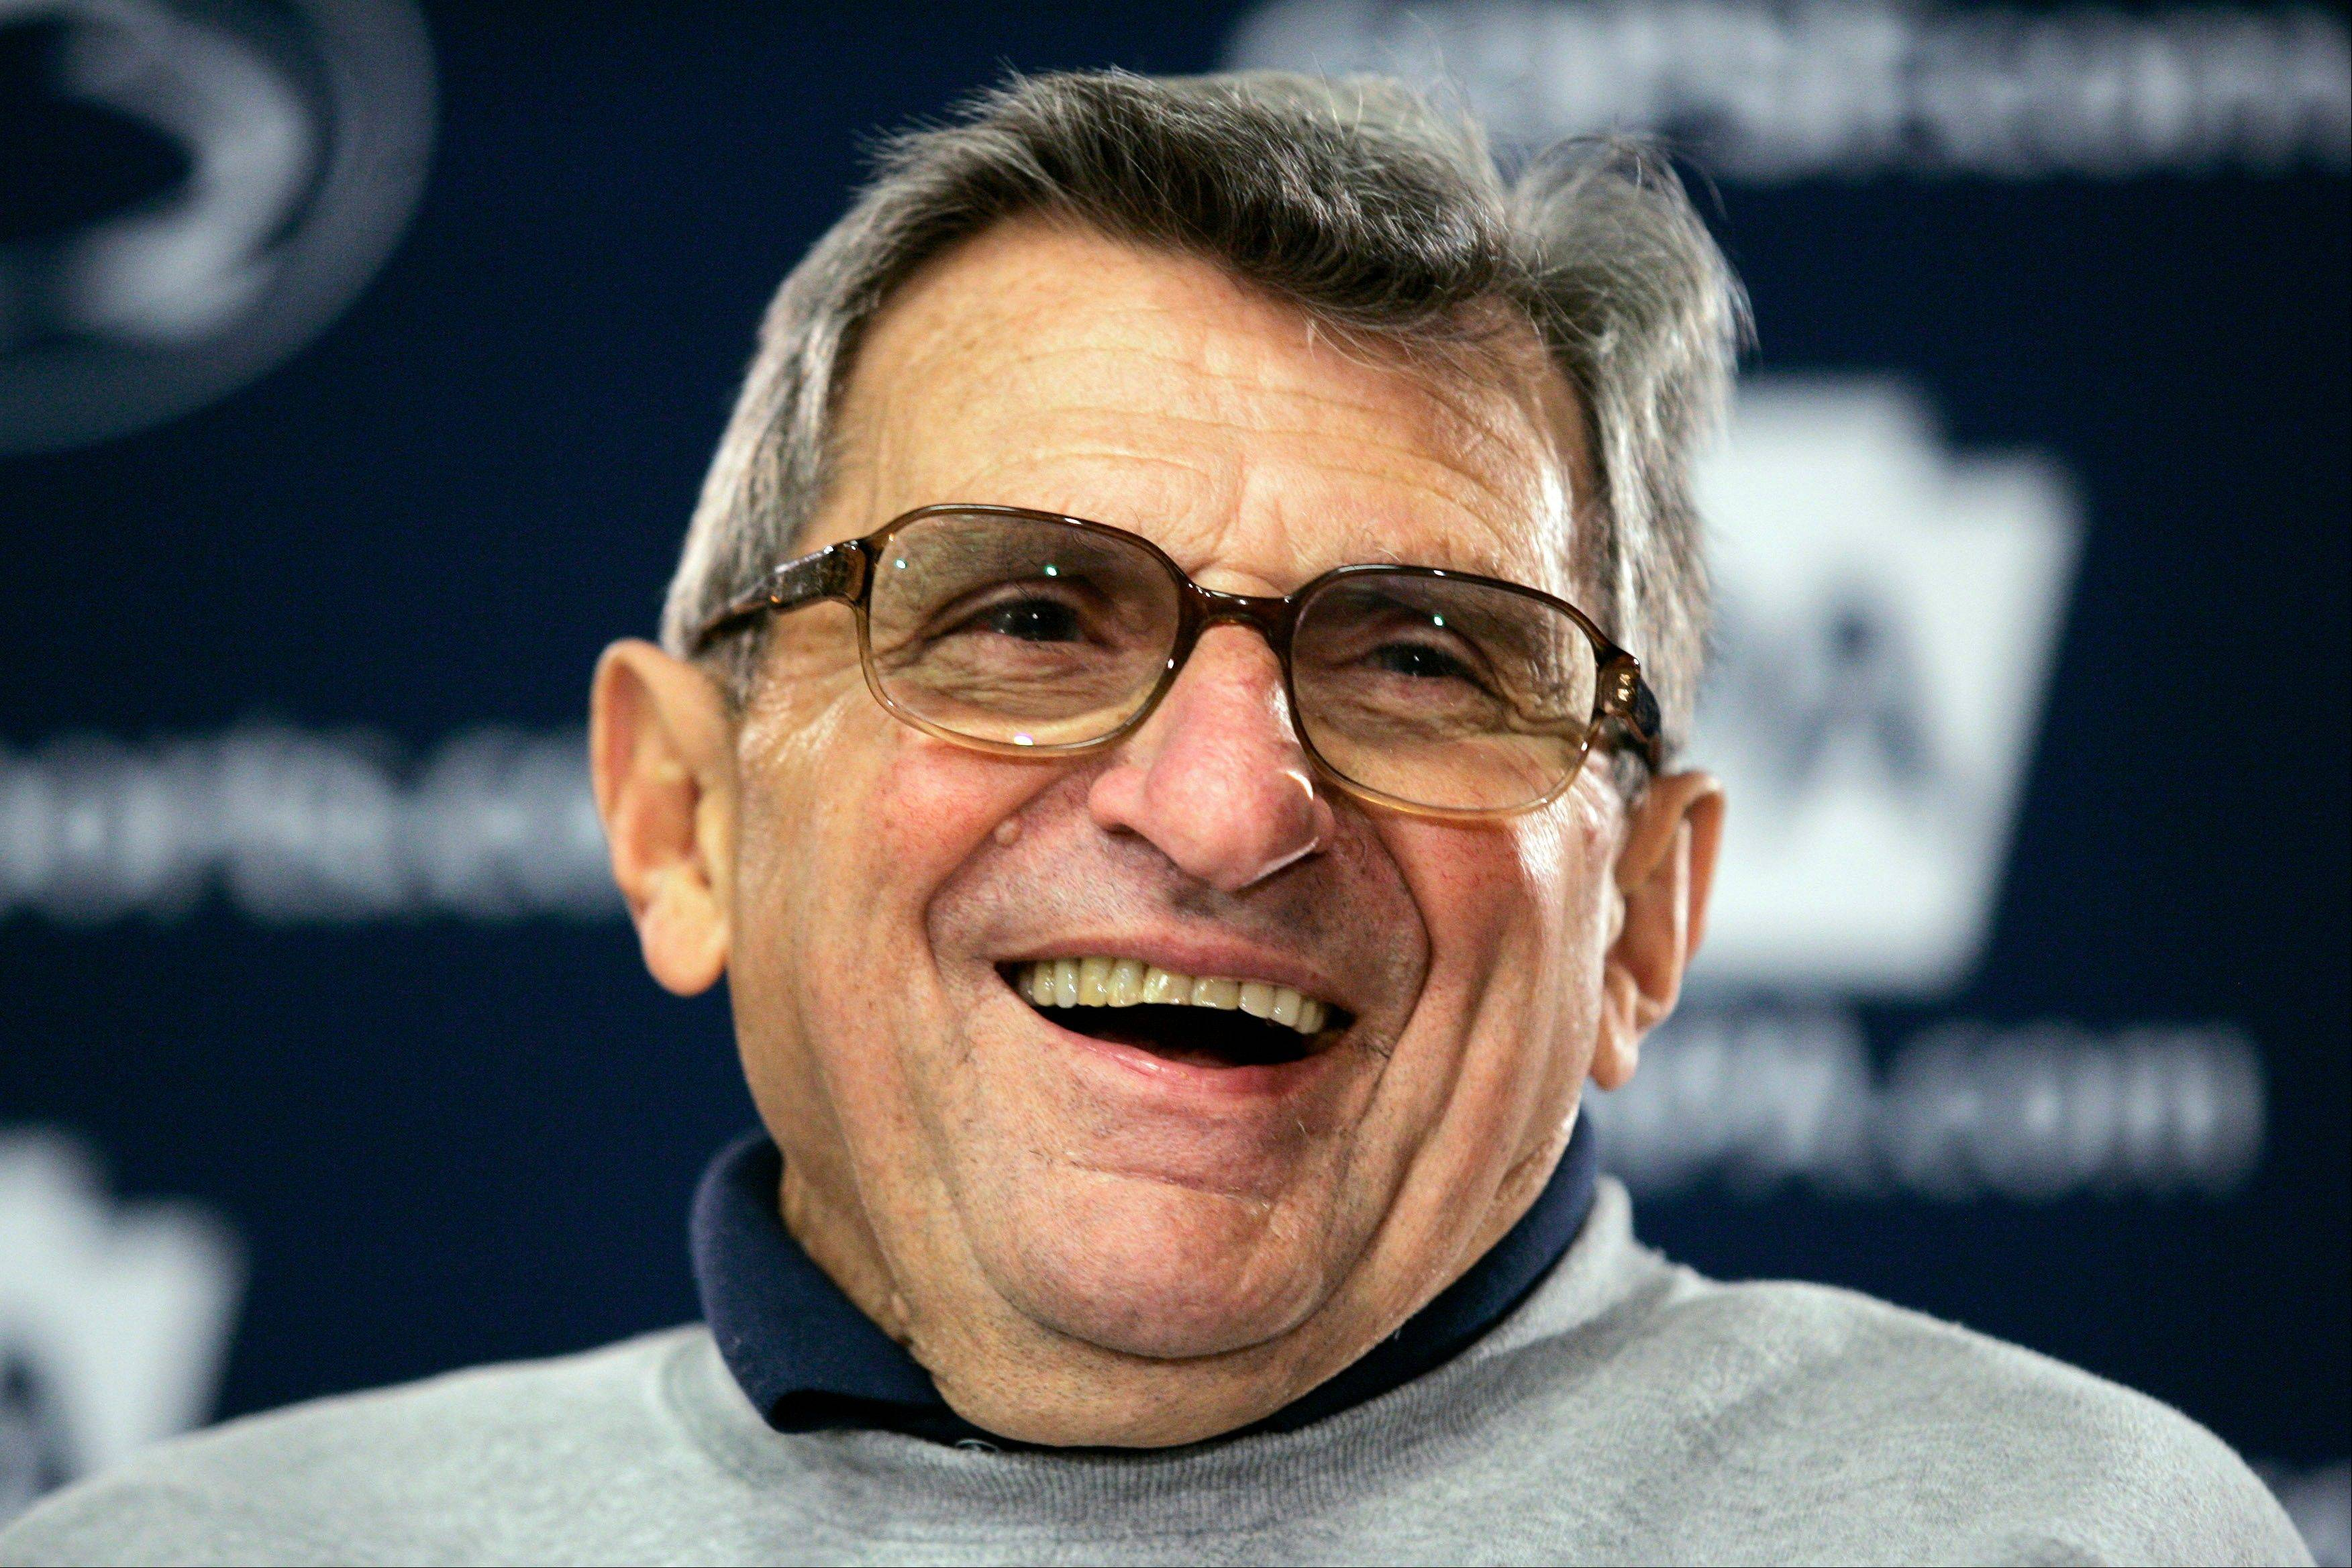 Paterno, in letter, defends Penn State football